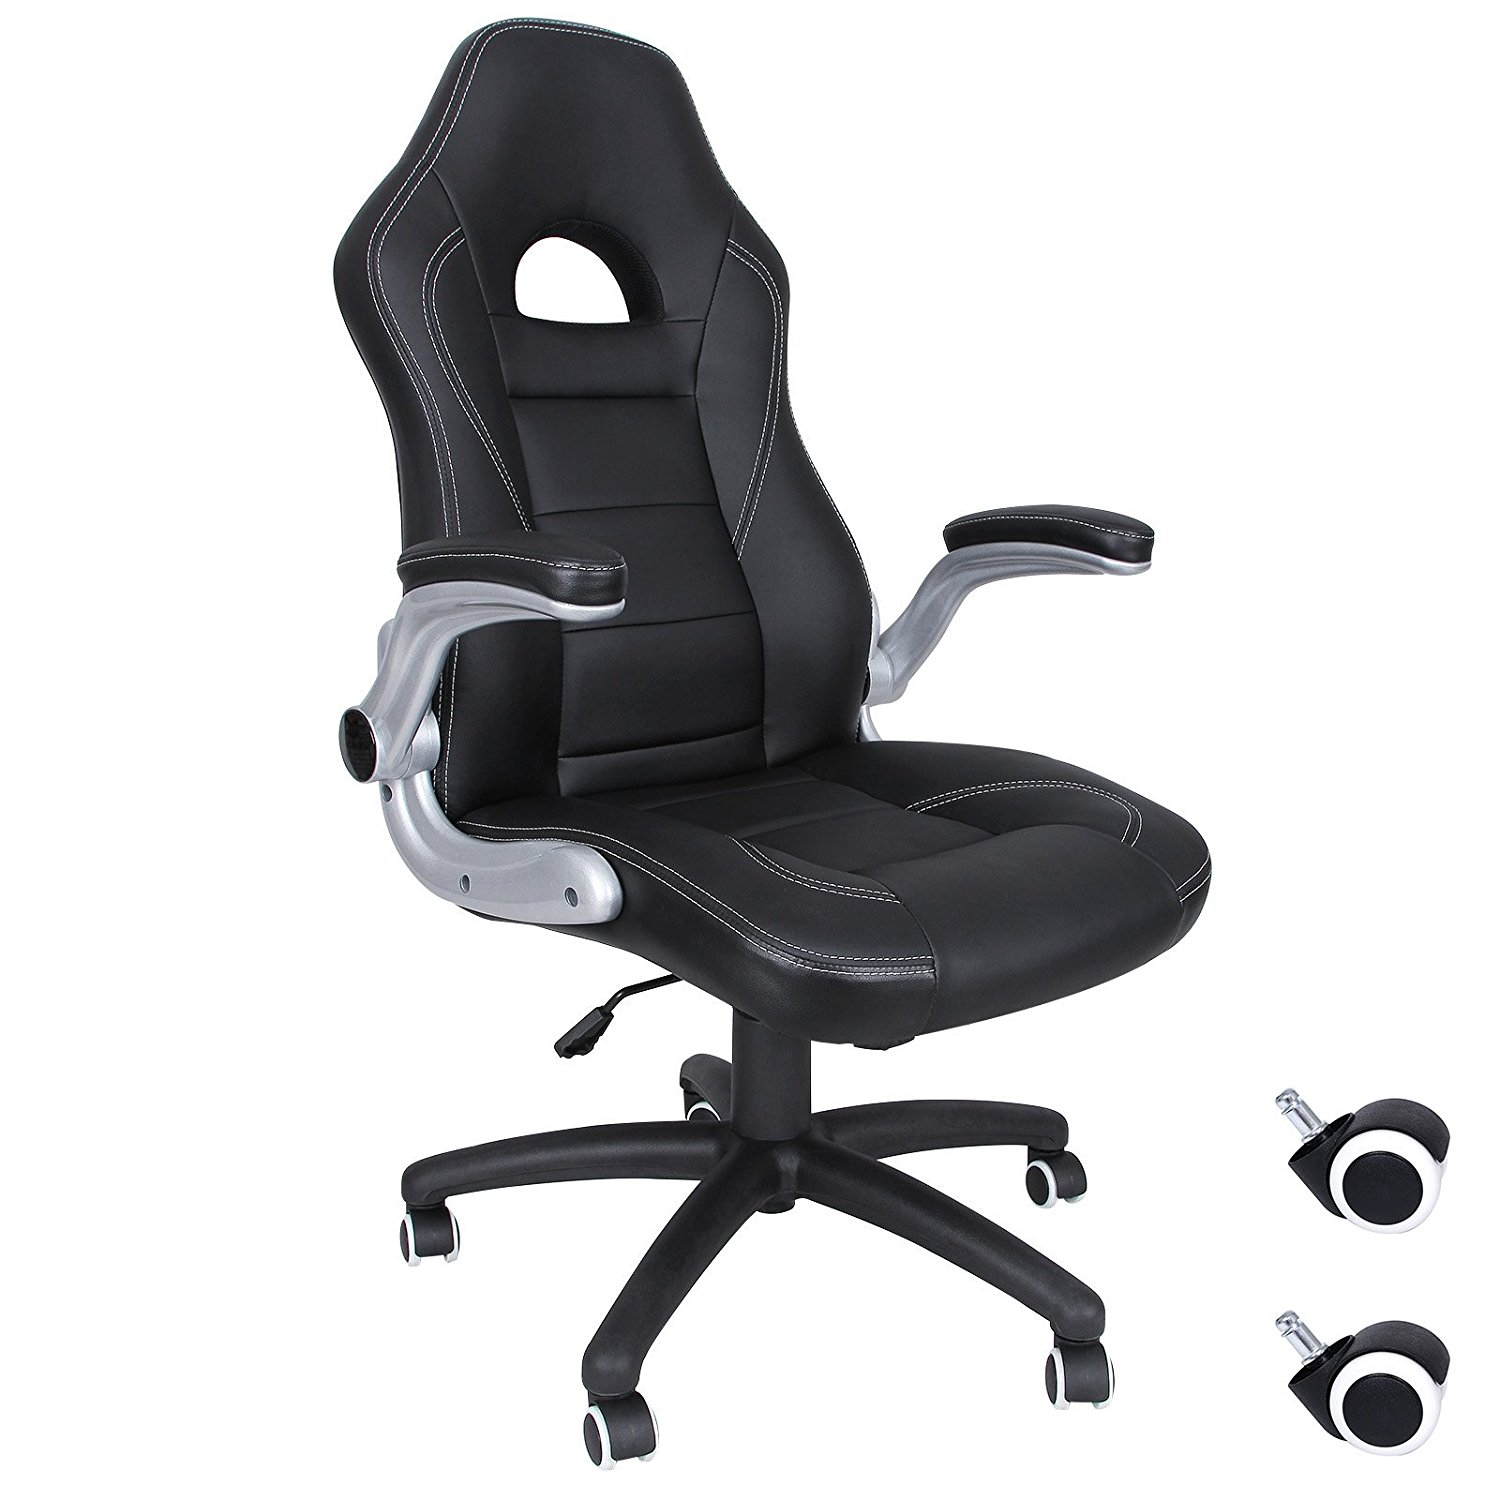 Silla de escritorio songmics racing negro obg28b por 99 99 for Precio silla escritorio